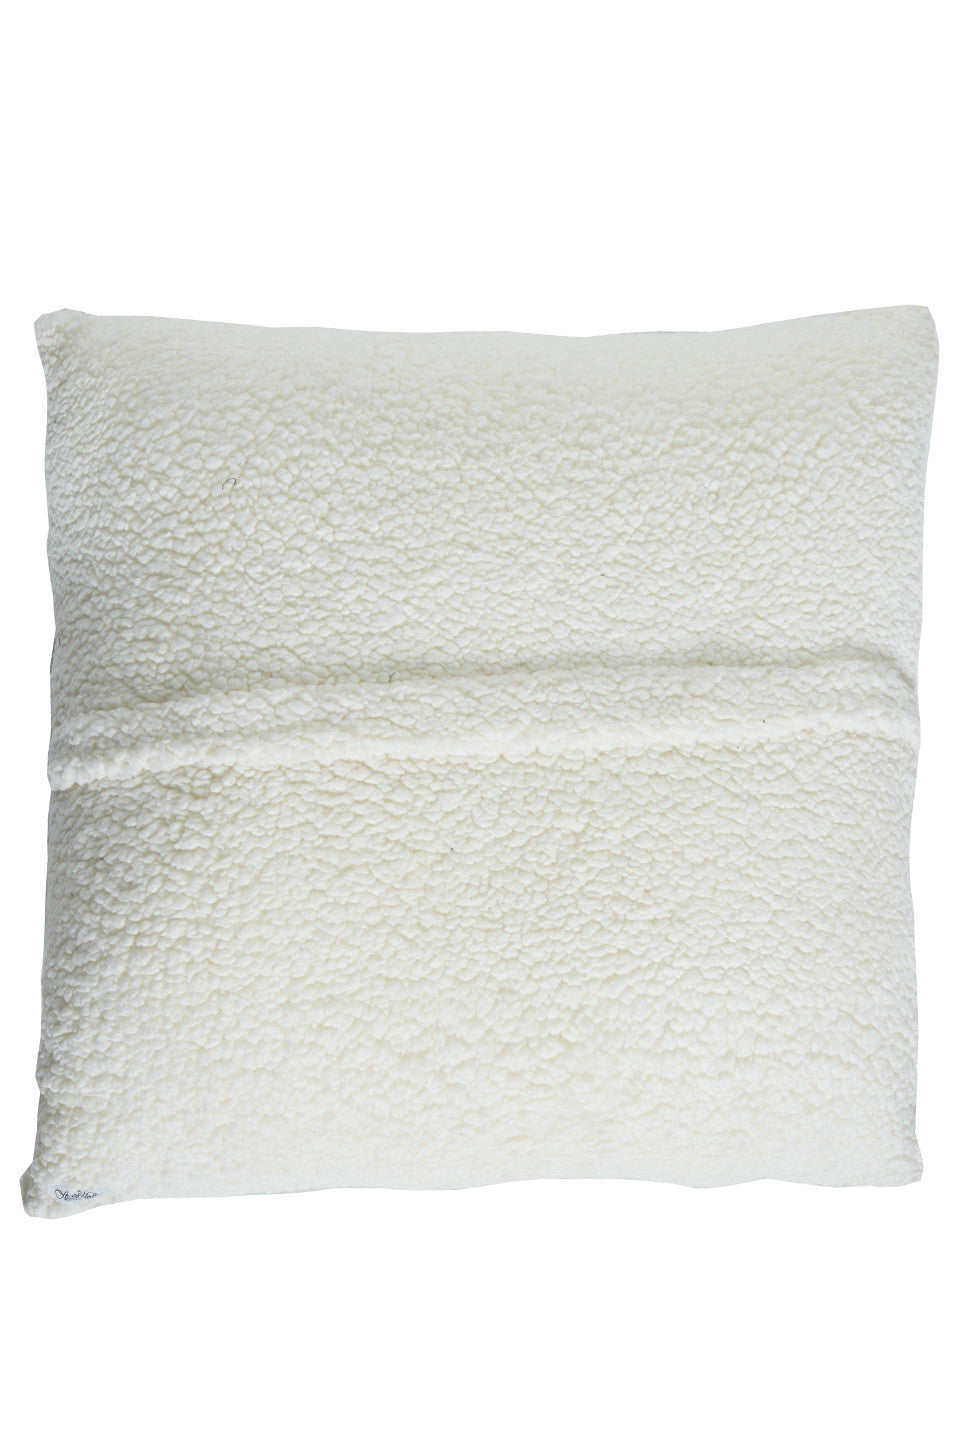 Livie Red Mouth Patch Faux Fur Pillow - Lauren Moshi - 3